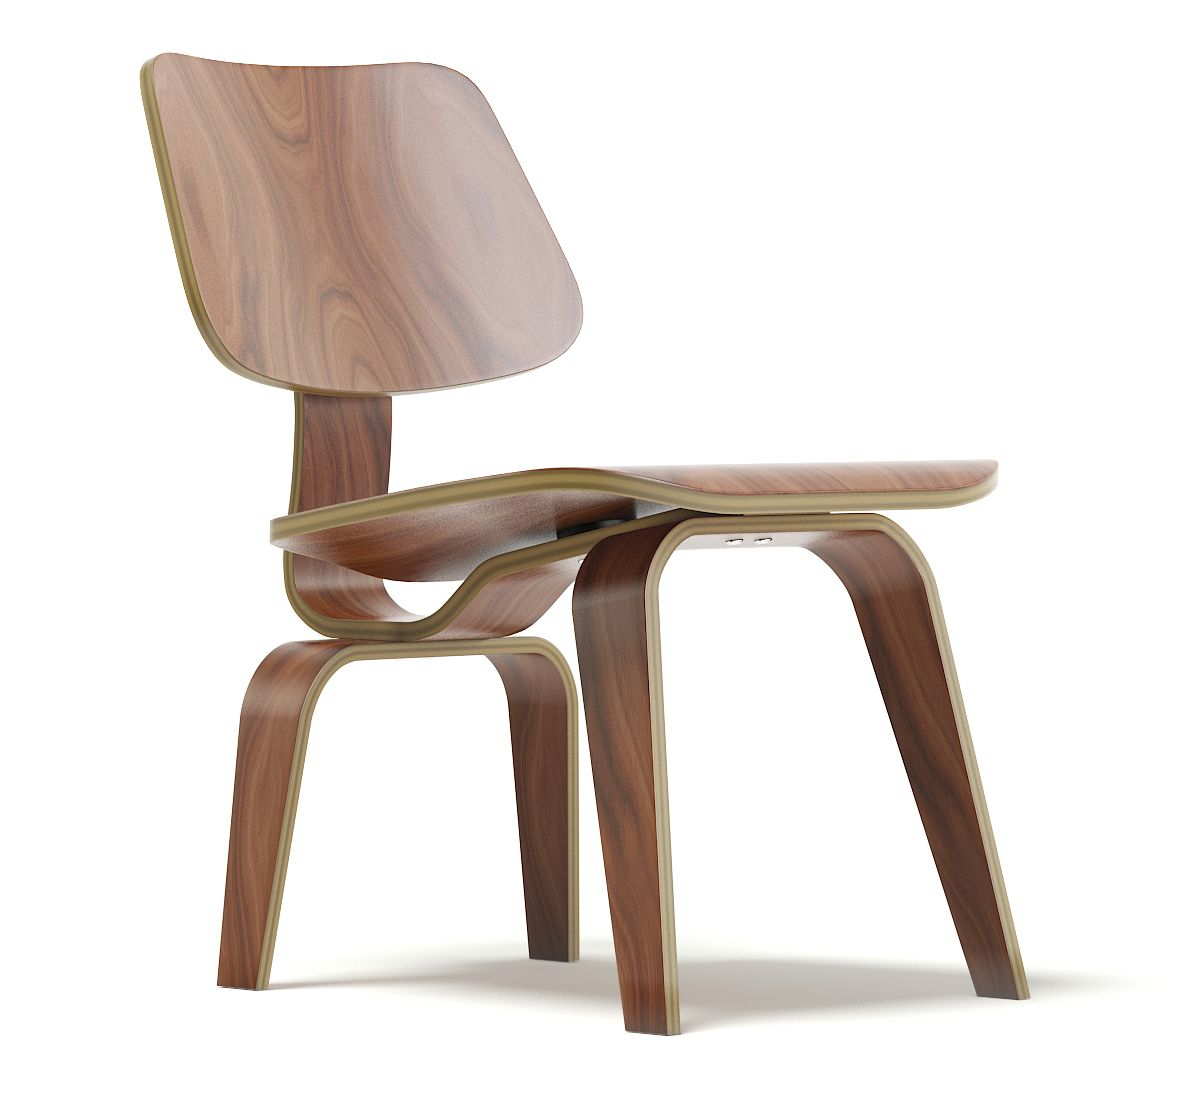 Free 3D Plywood Chair Model | Plywood chair, Chair, Kids